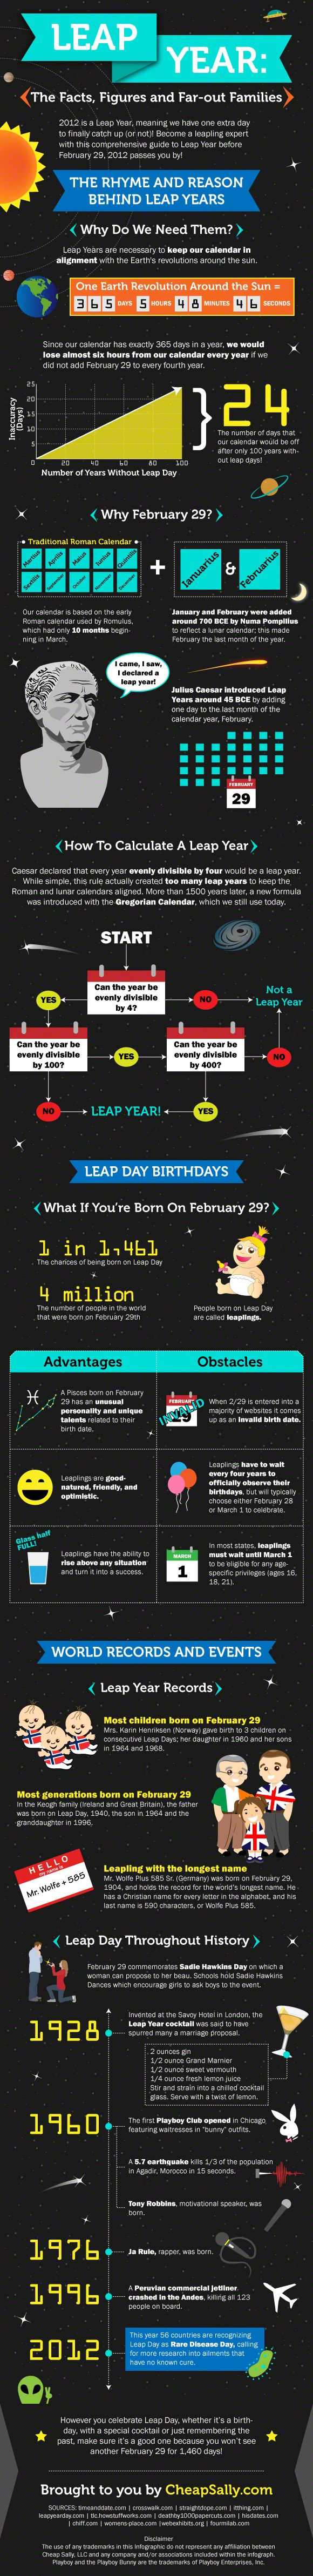 Leap Year Origins and Other Weird Facts (infographic) from huffingtonpost.com.